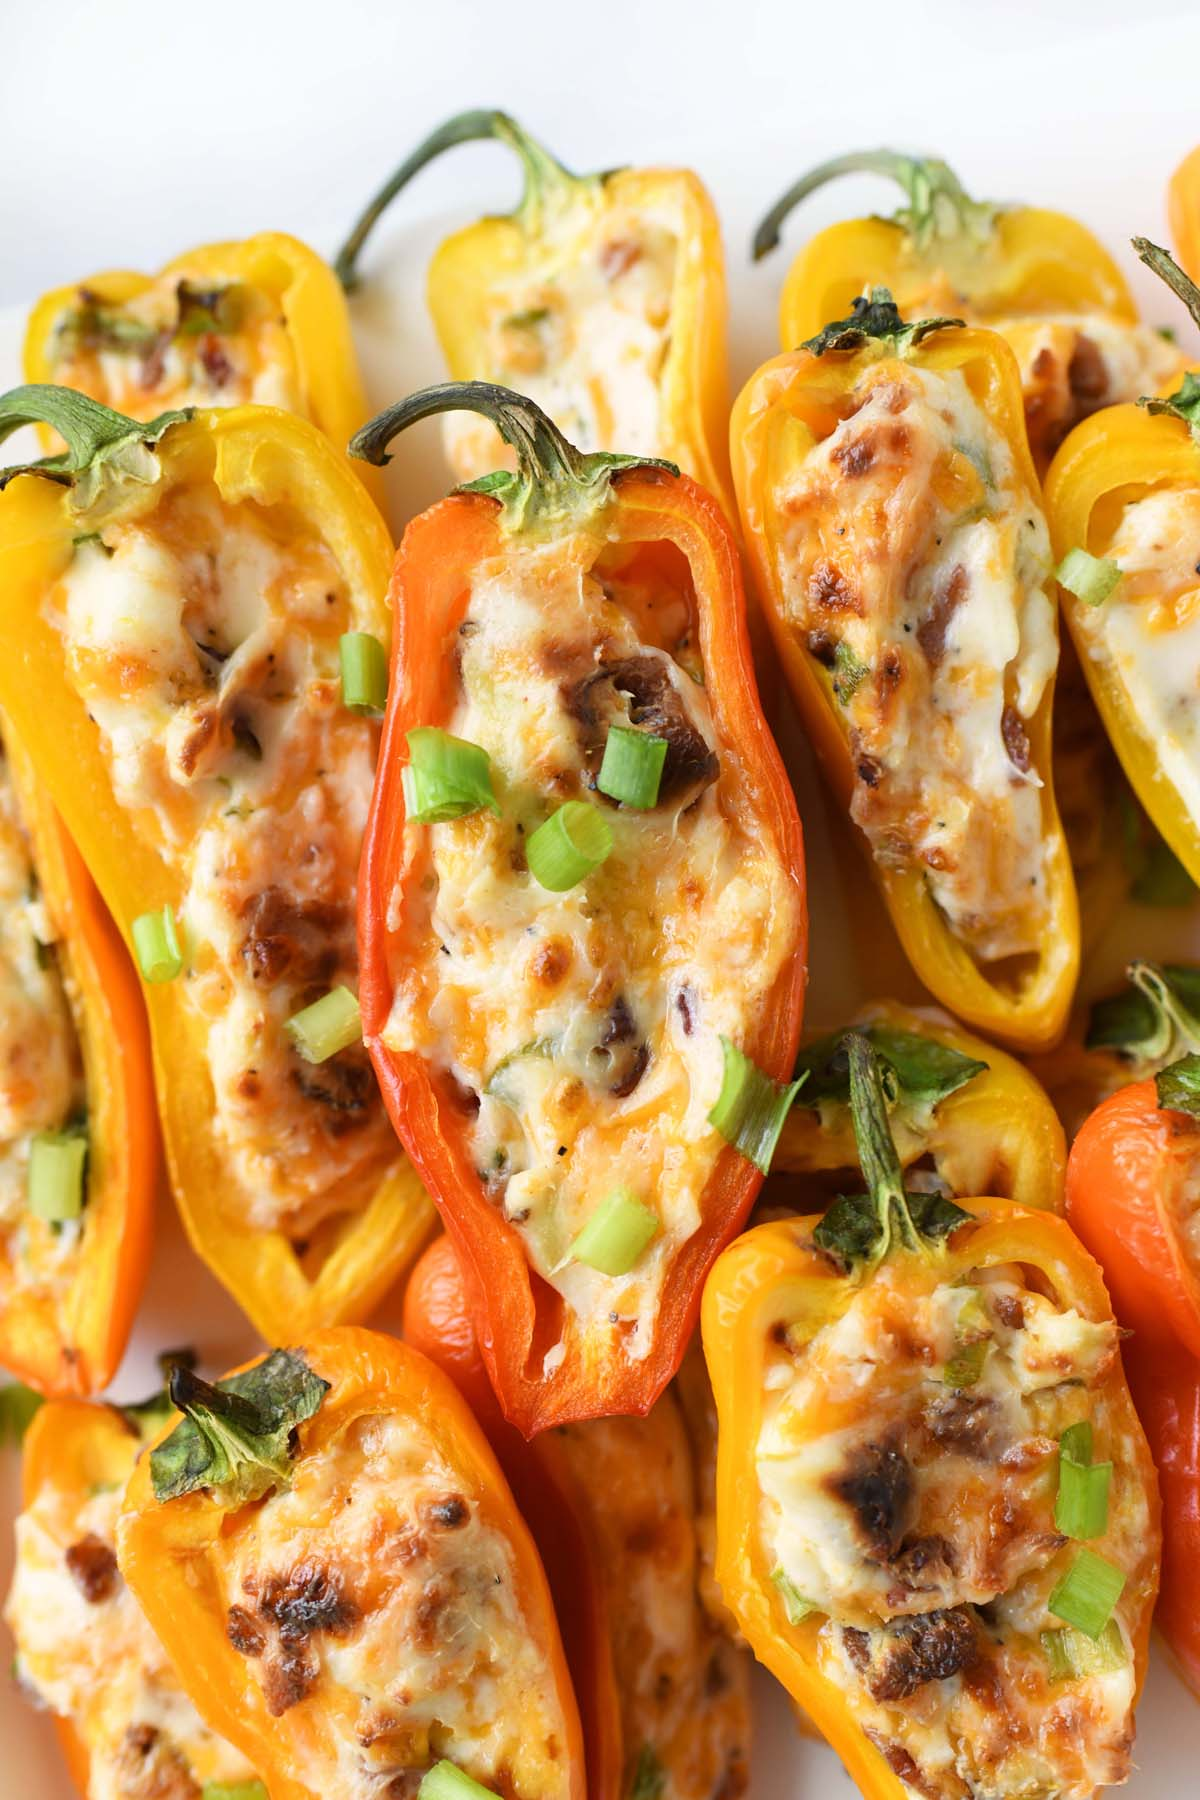 Bacon and cheese sweet peppers stacked on a white tray.